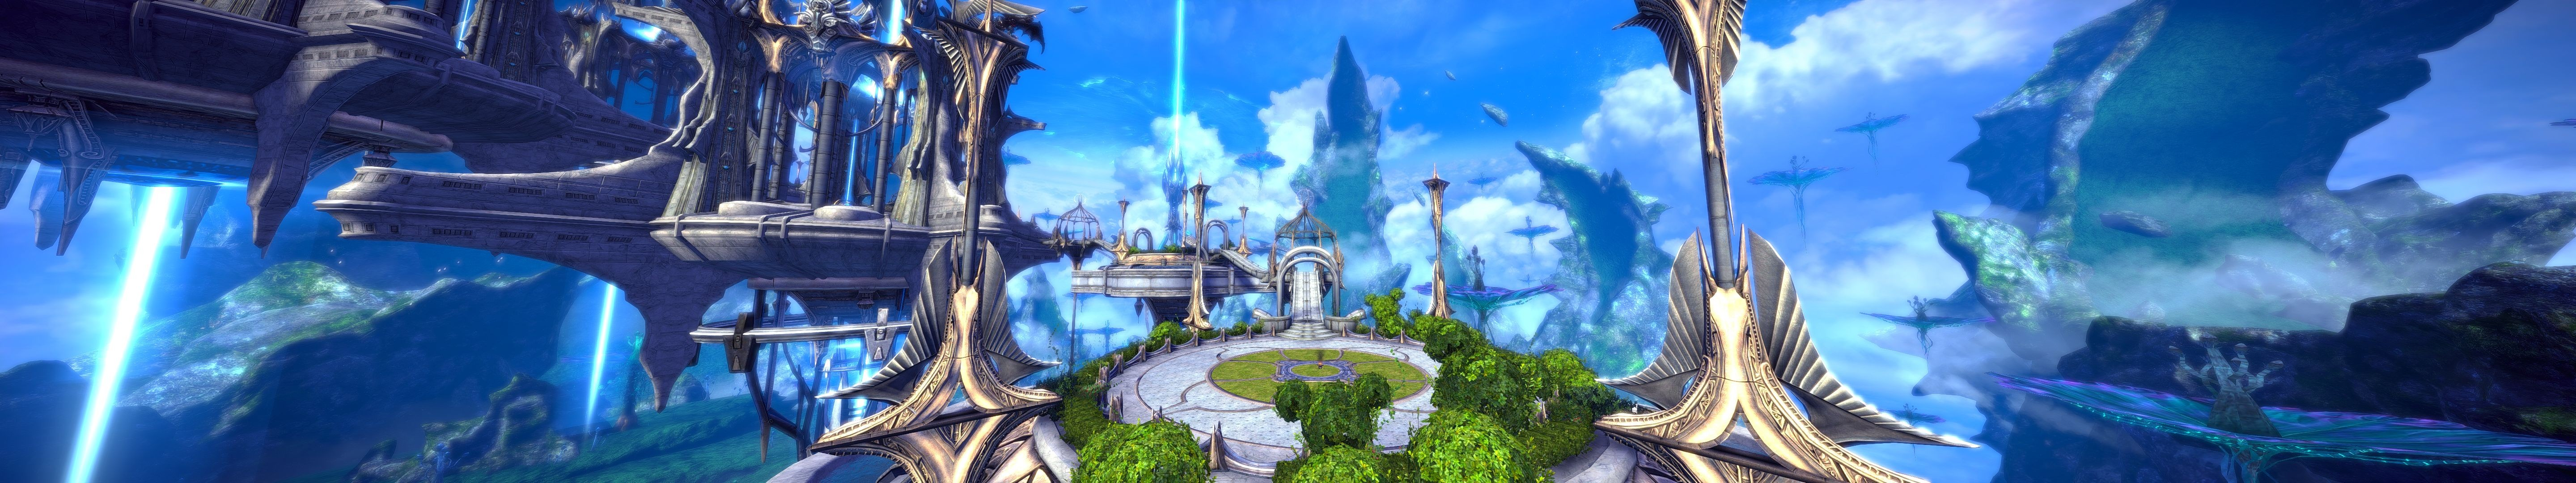 TERA: Rising - My first time through Skygarden. Looks like such a nice vacation spot. 3 monitors required to view fullscreen without scrolling left to right.